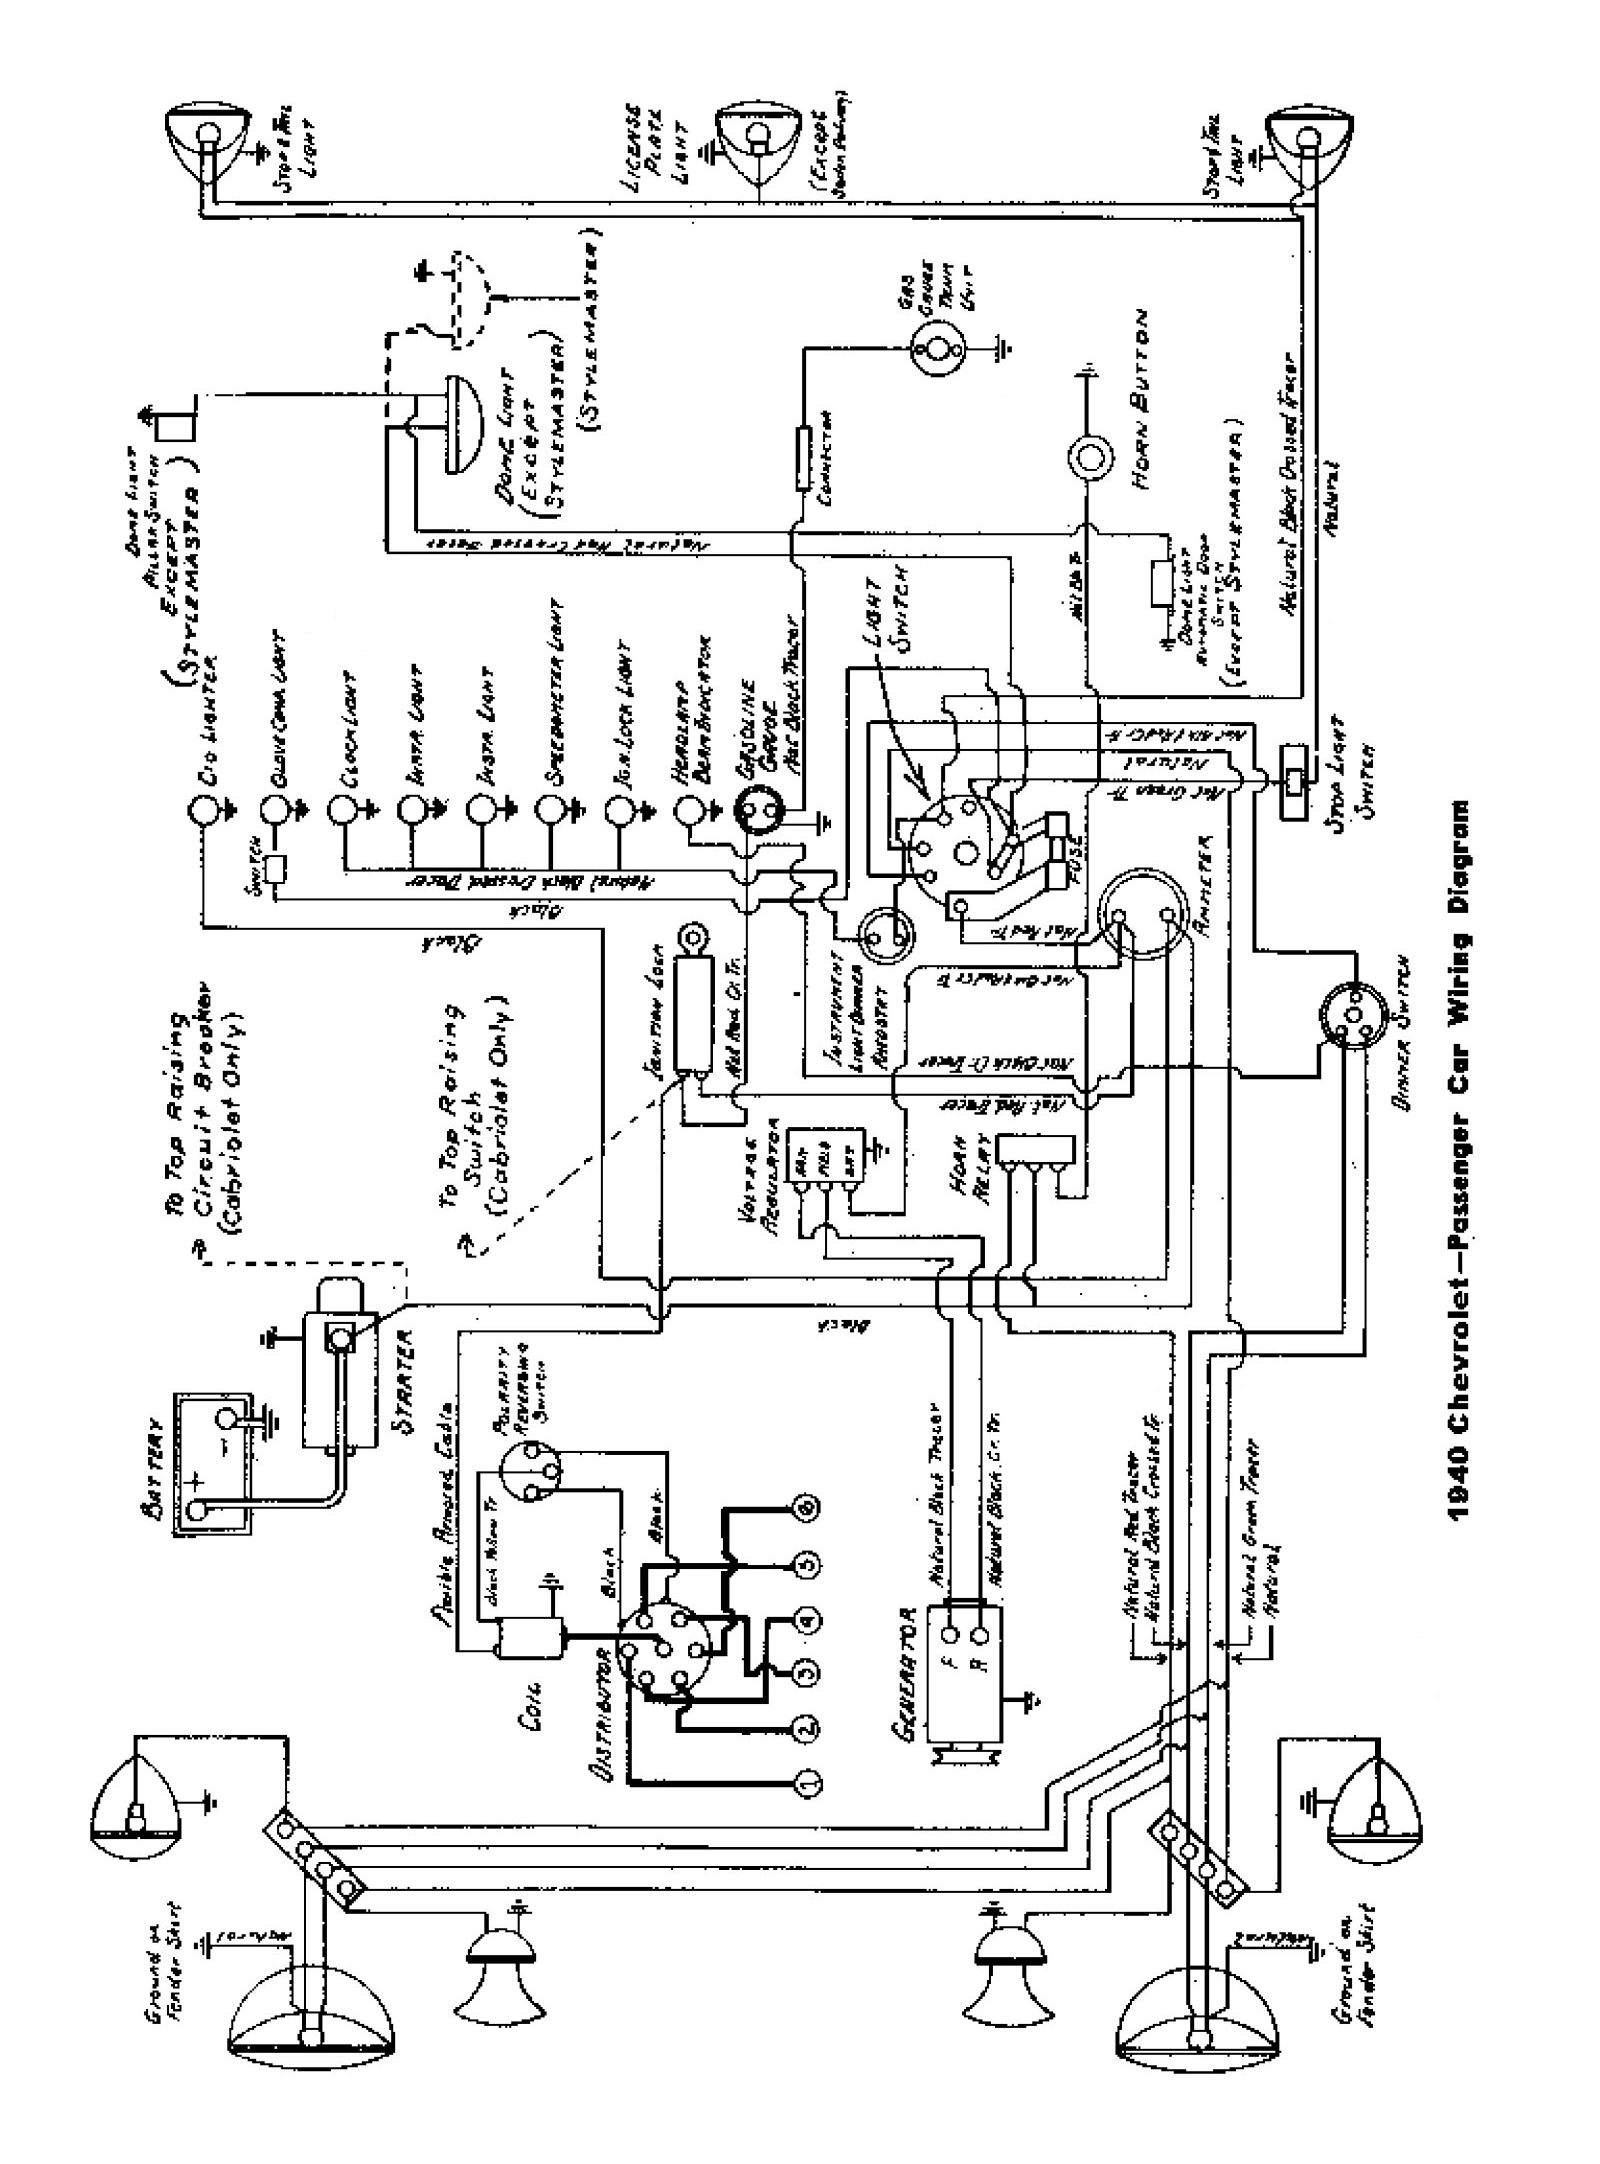 40car free chevy truck wiring diagrams gmc truck wiring diagrams free 1967 Chevelle Wiring Diagram at soozxer.org